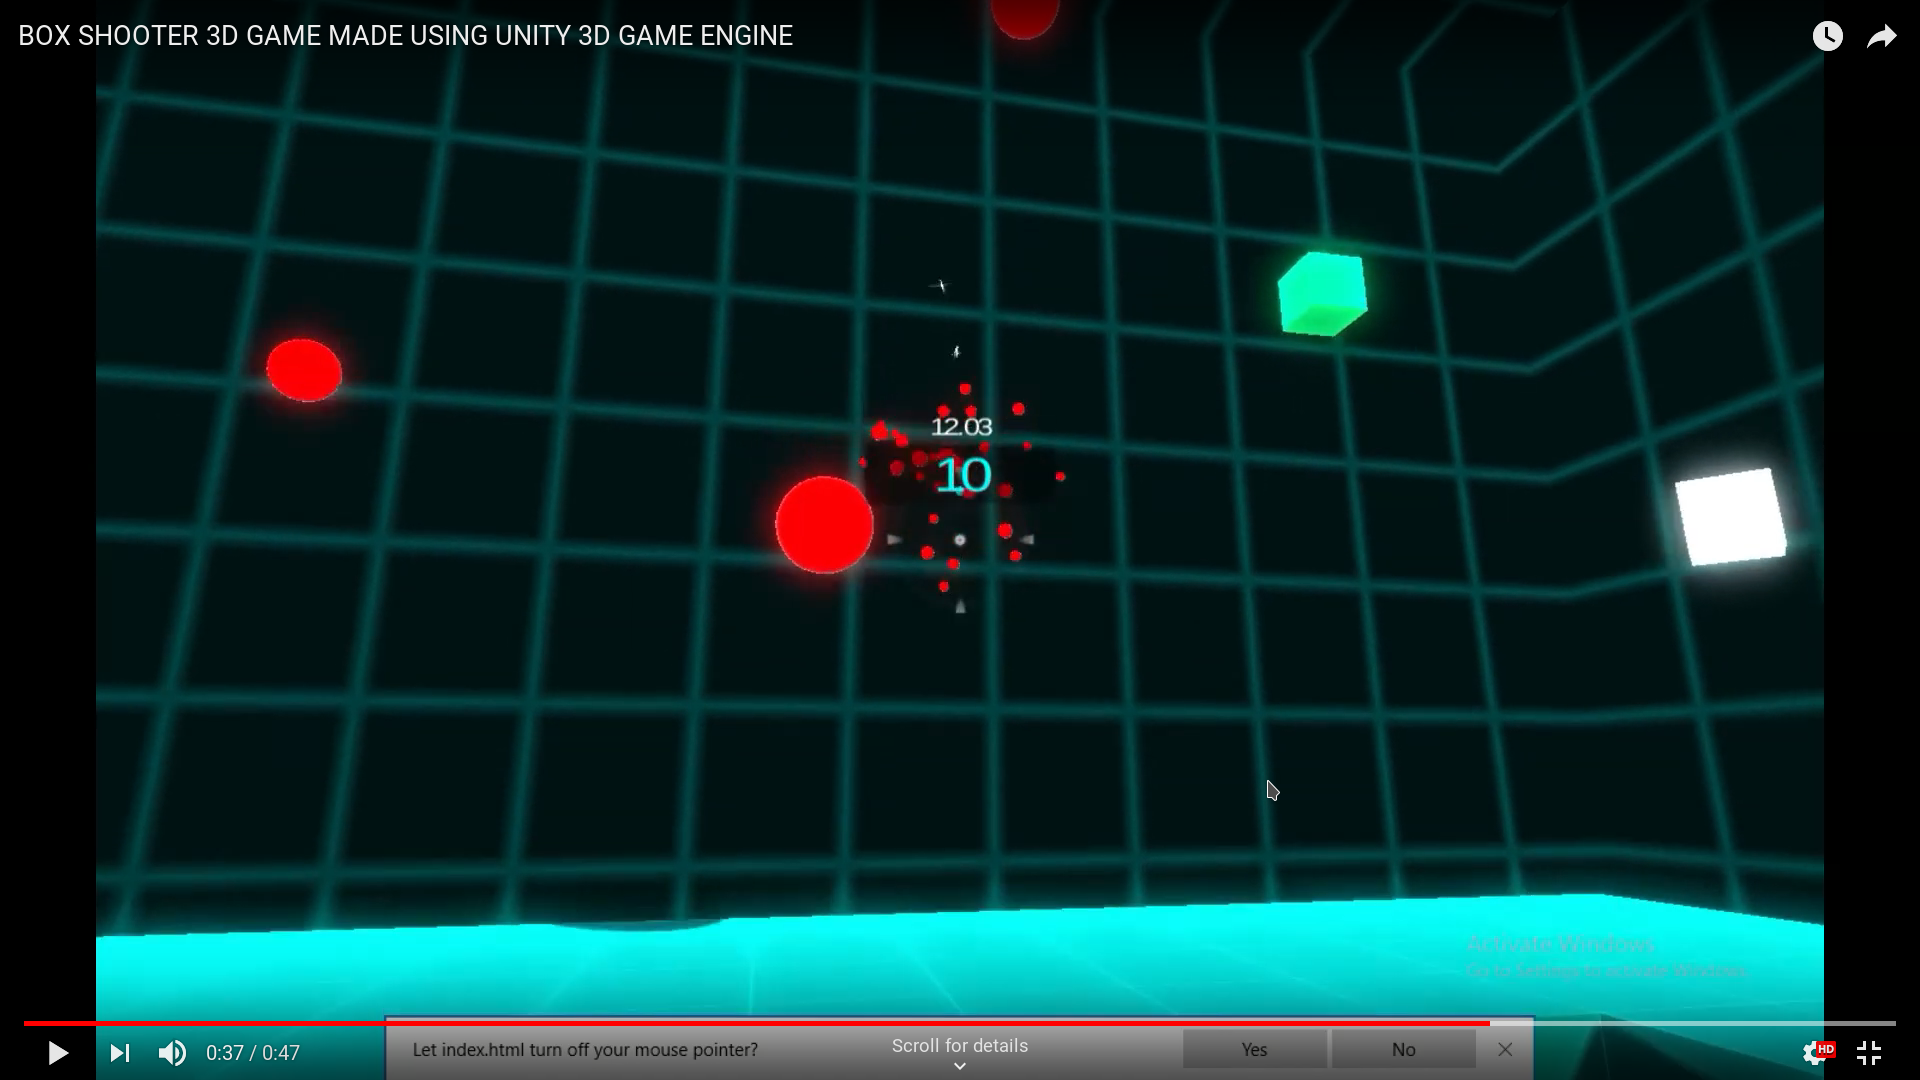 Box shooter in Unity 3D